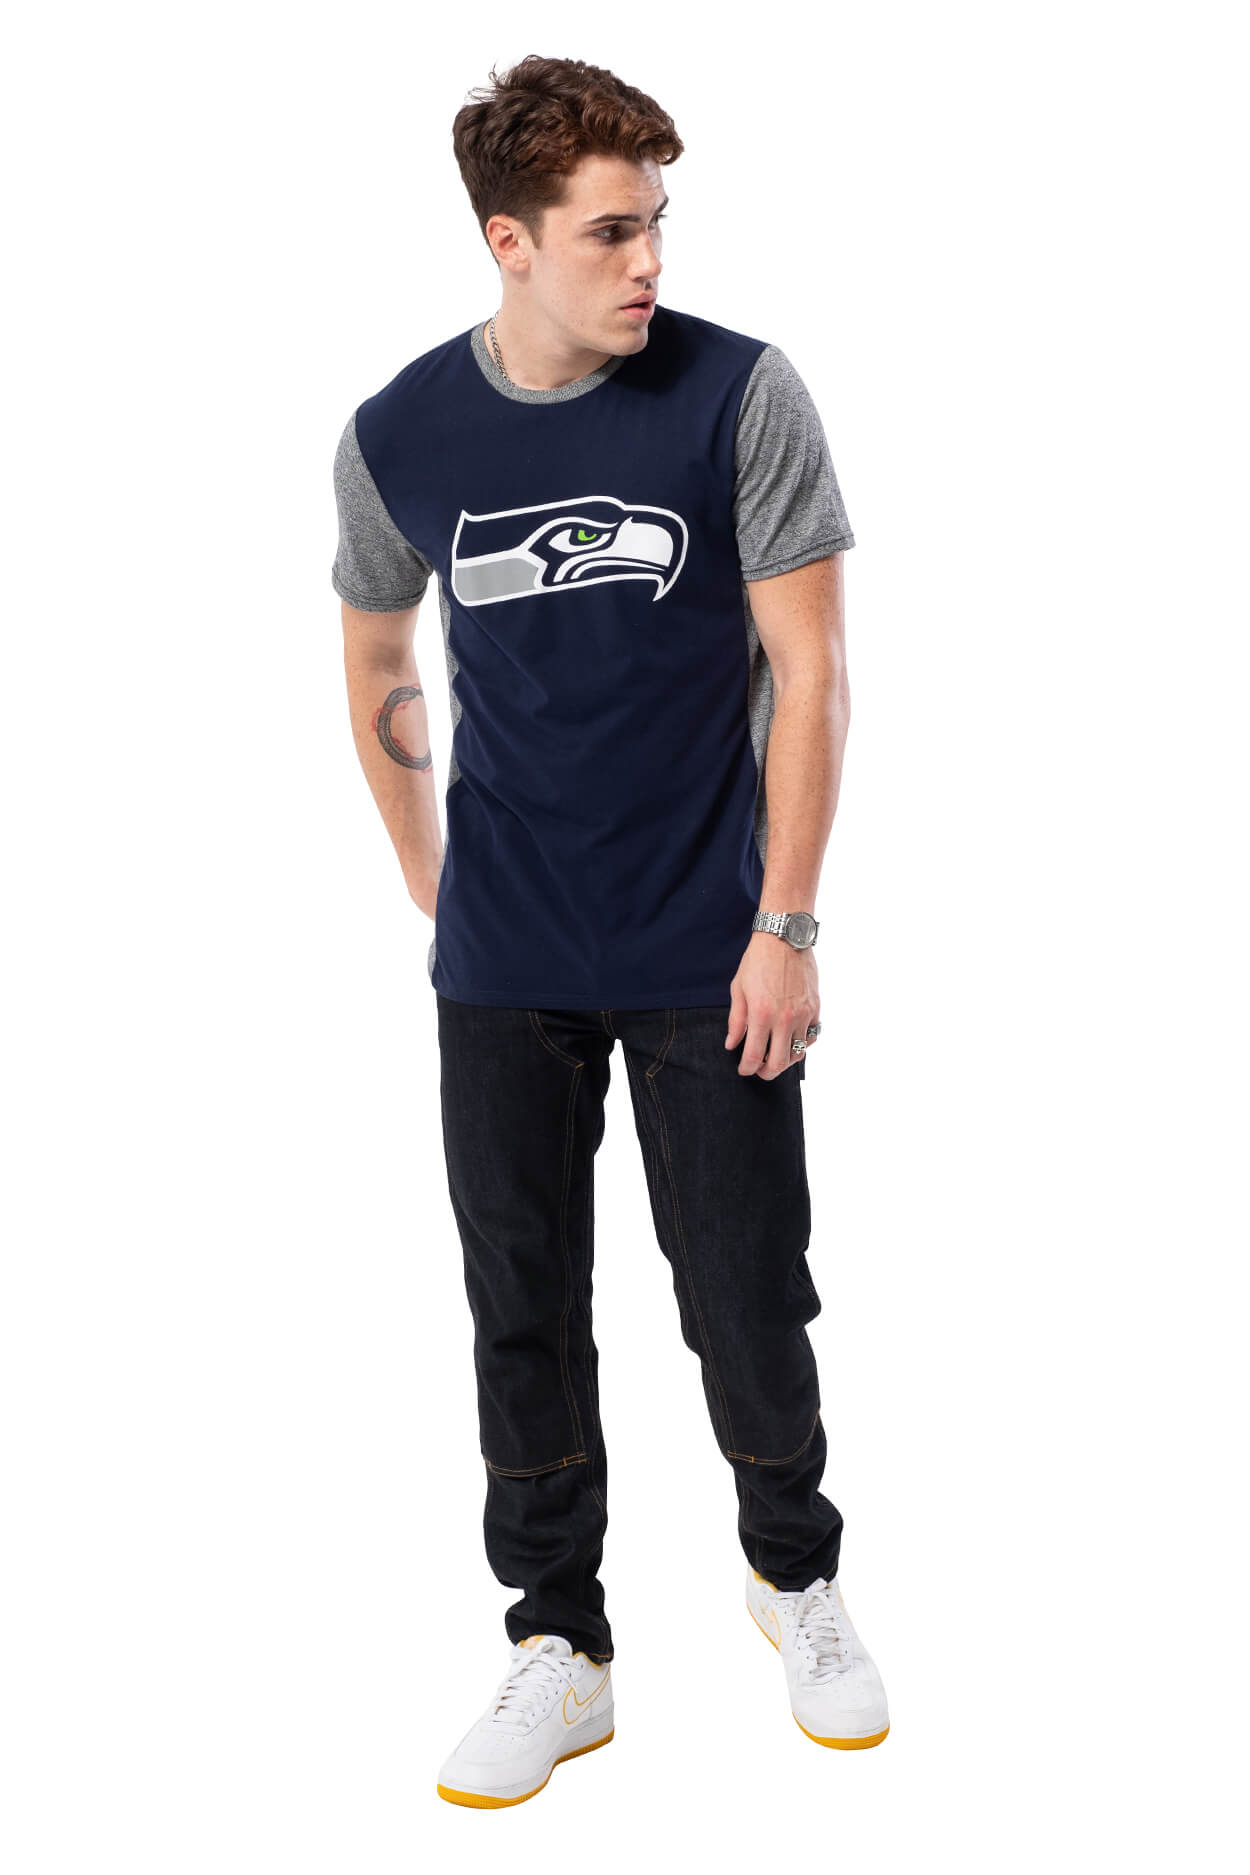 NFL Seattle Seahawks Men's Raglan Short Sleeve Tee|Seattle Seahawks